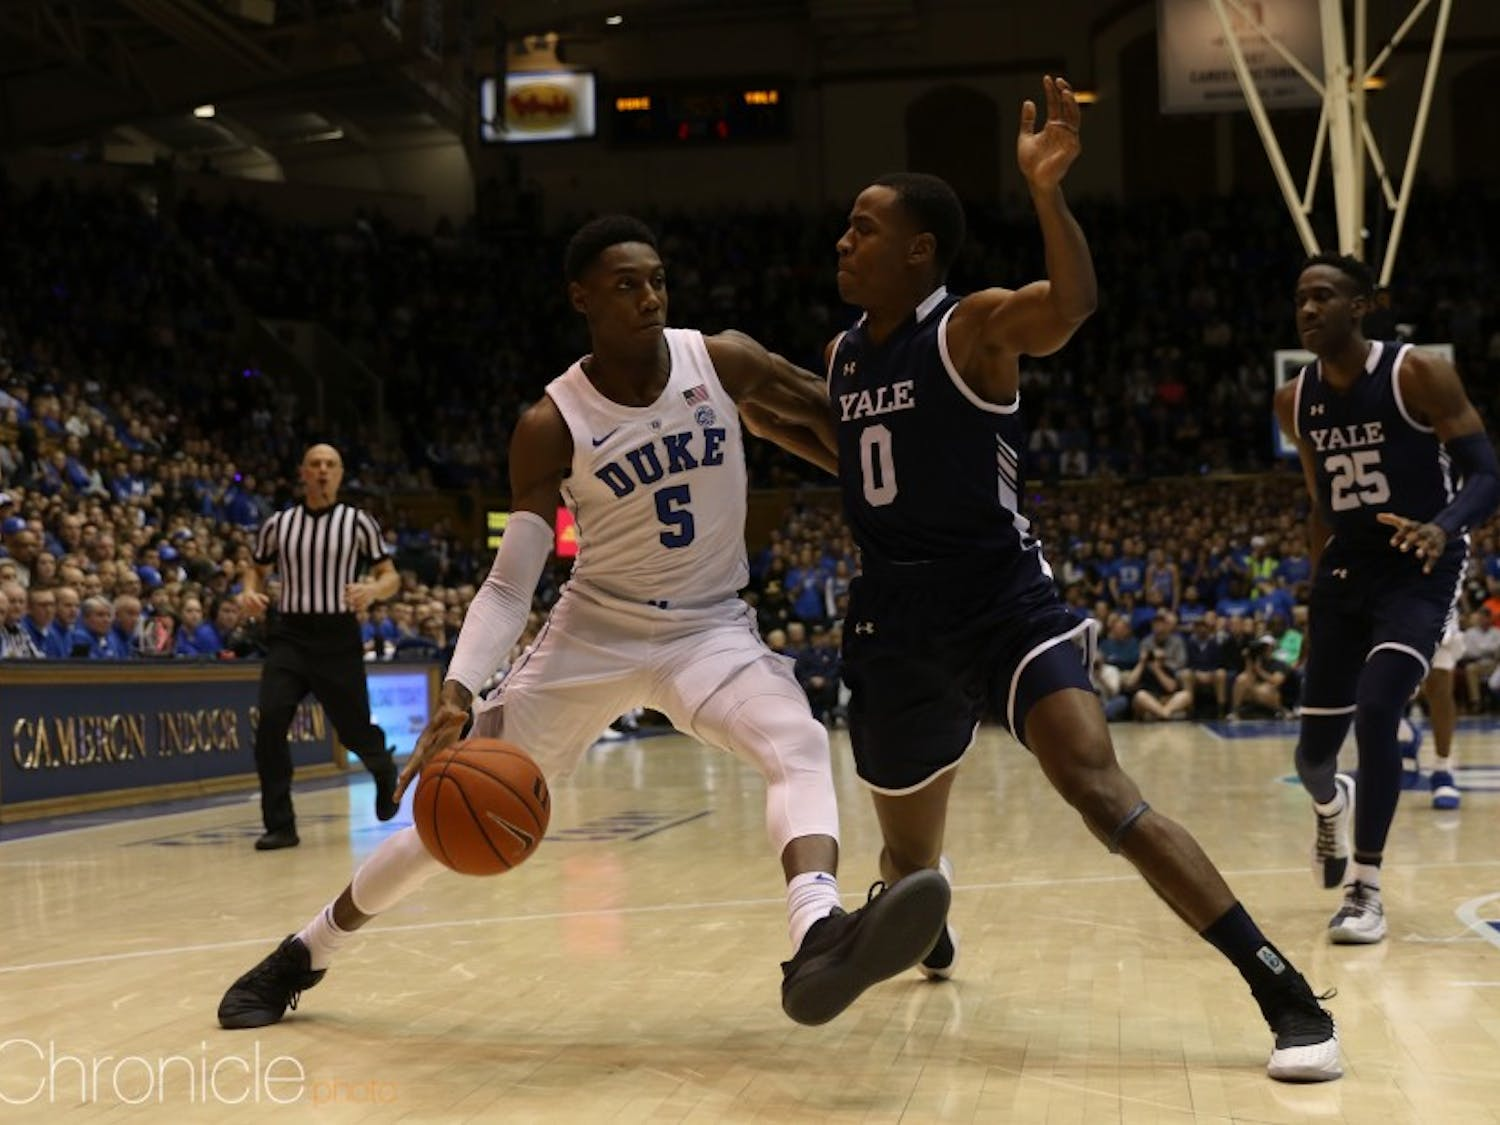 R.J. Barrett and the Blue Devils' first-half shooting struggles continued Tuesday.